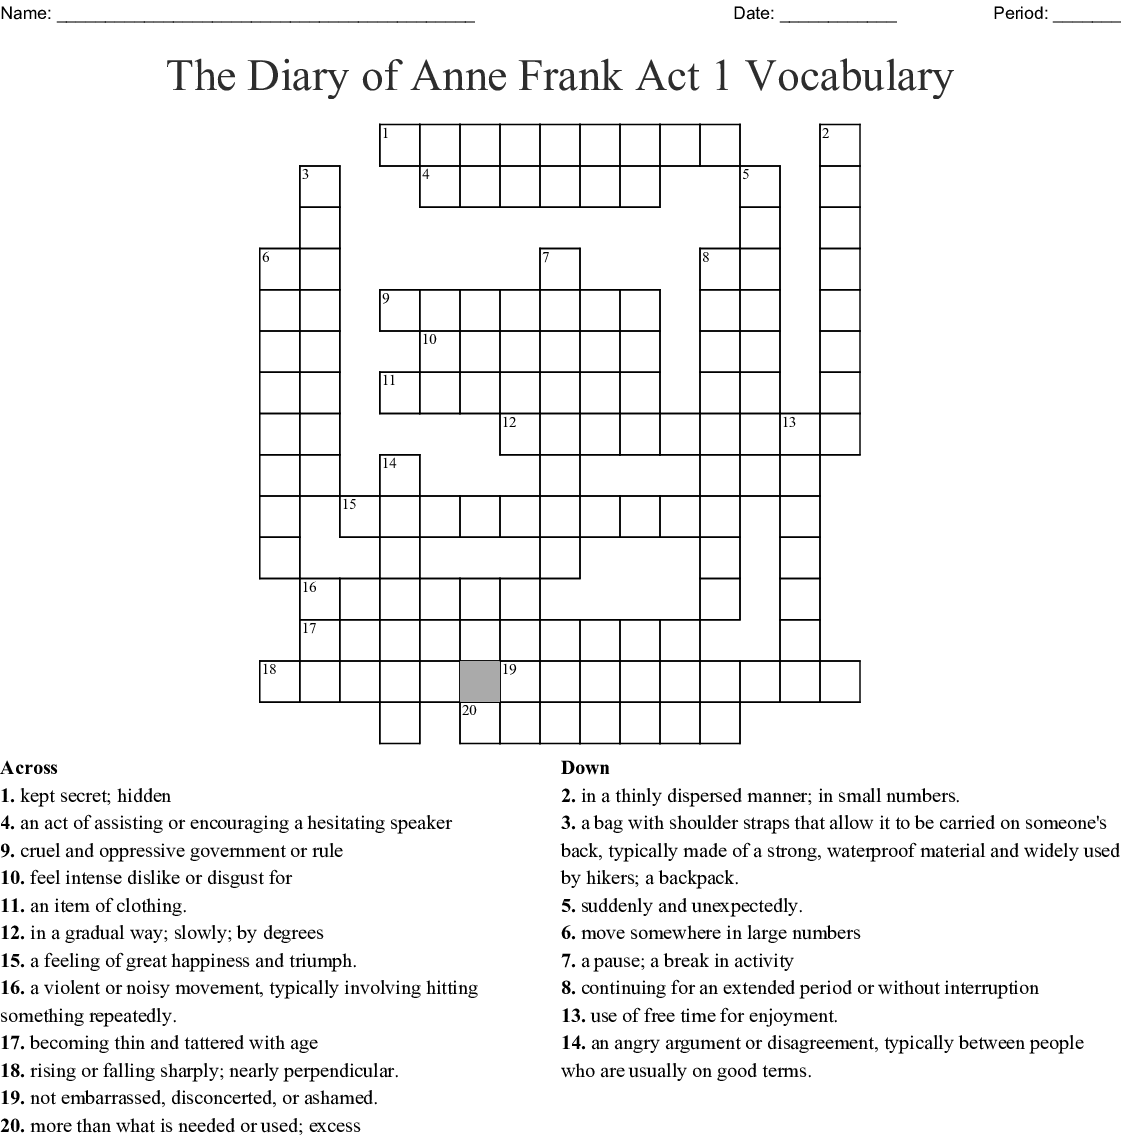 The Diary of Anne Frank Word Search - WordMint